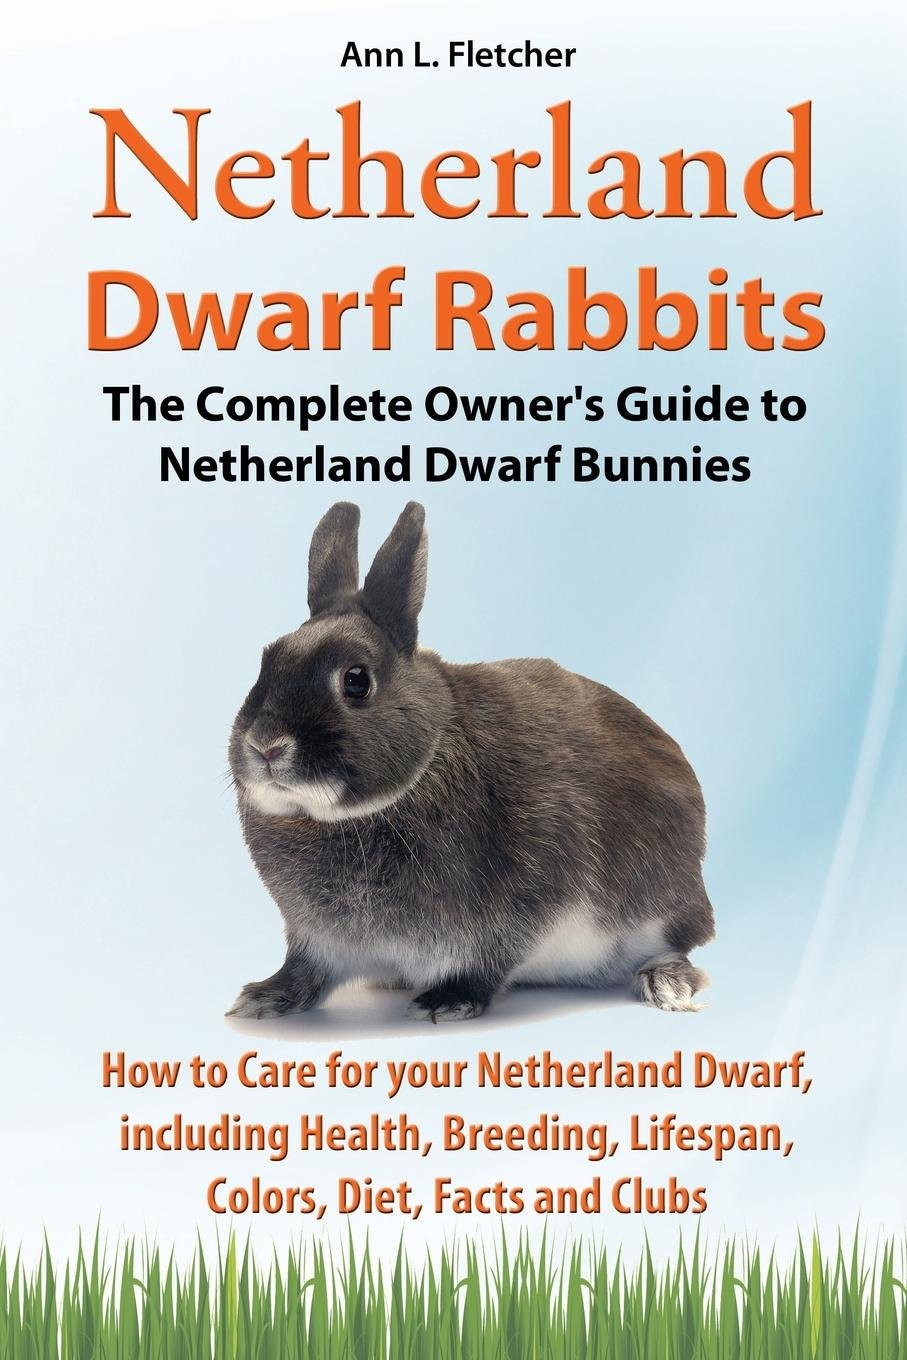 Download Netherland Dwarf Rabbits, The Complete Owner's Guide to Netherland Dwarf Bunnies, How to Care for your Netherland Dwarf, including Health, Breeding, Lifespan, Colors, Diet, Facts and Clubs pdf epub